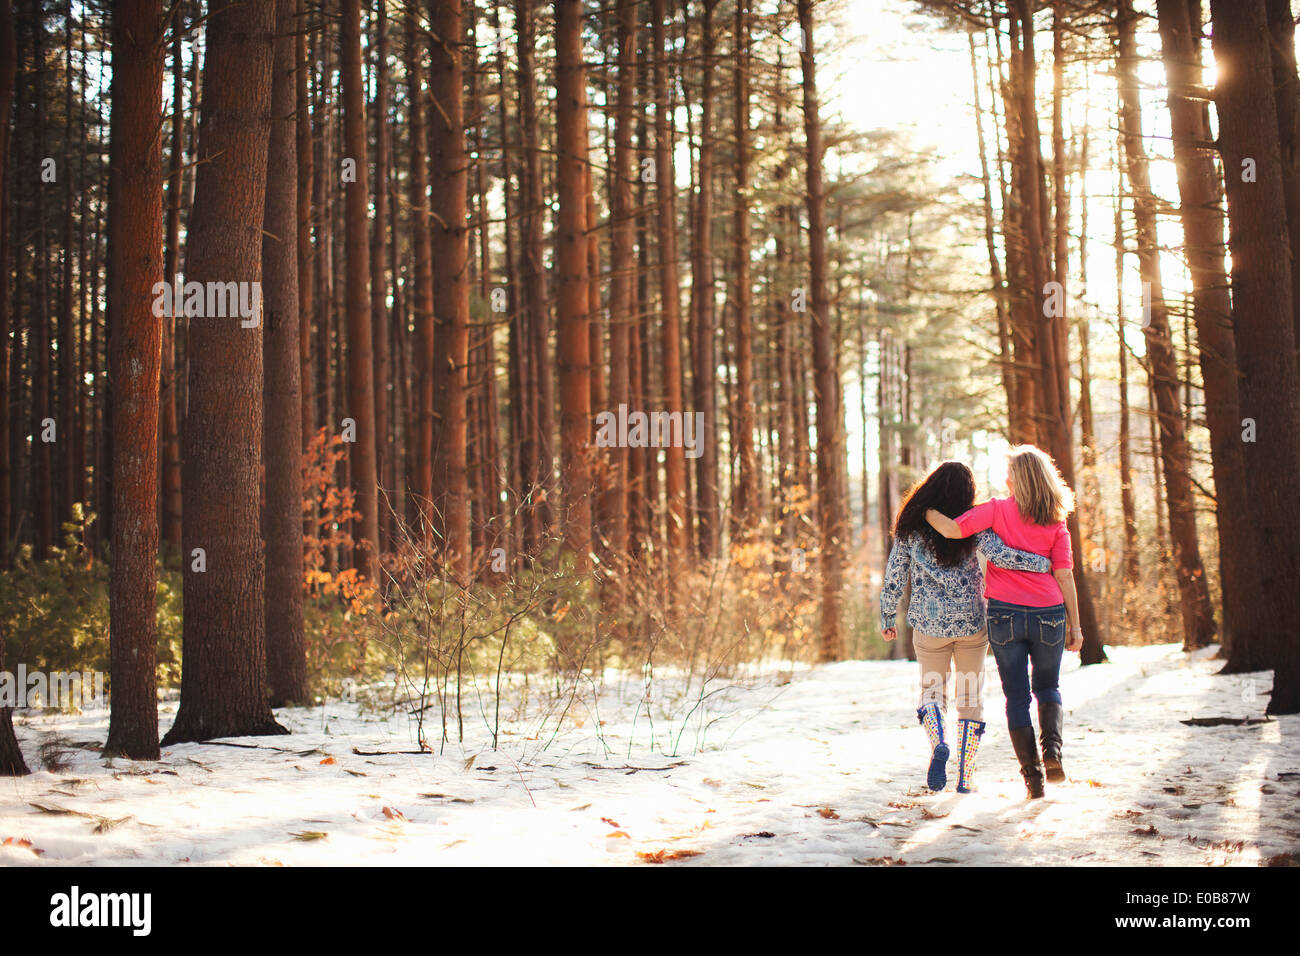 Mature women walking in forest - Stock Image